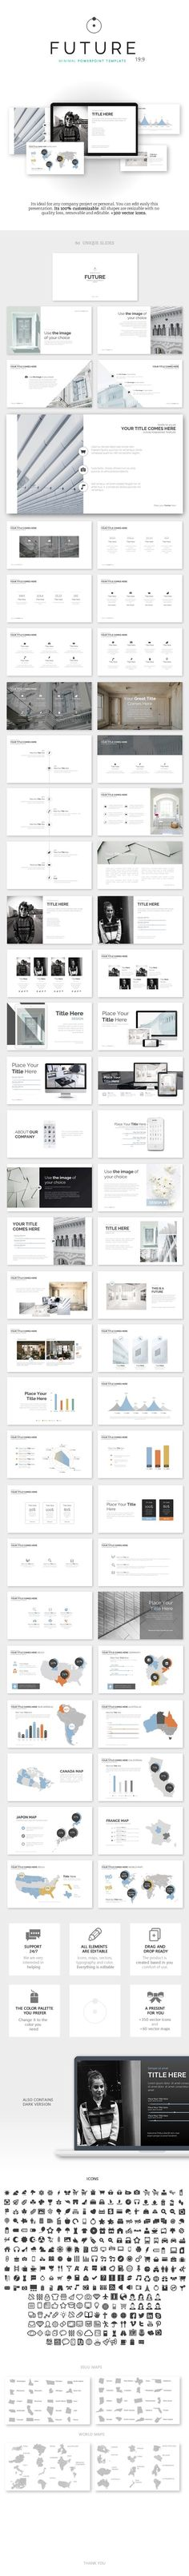 Future - Minimal Powerpoint Template - PowerPoint Templates Presentation Templates